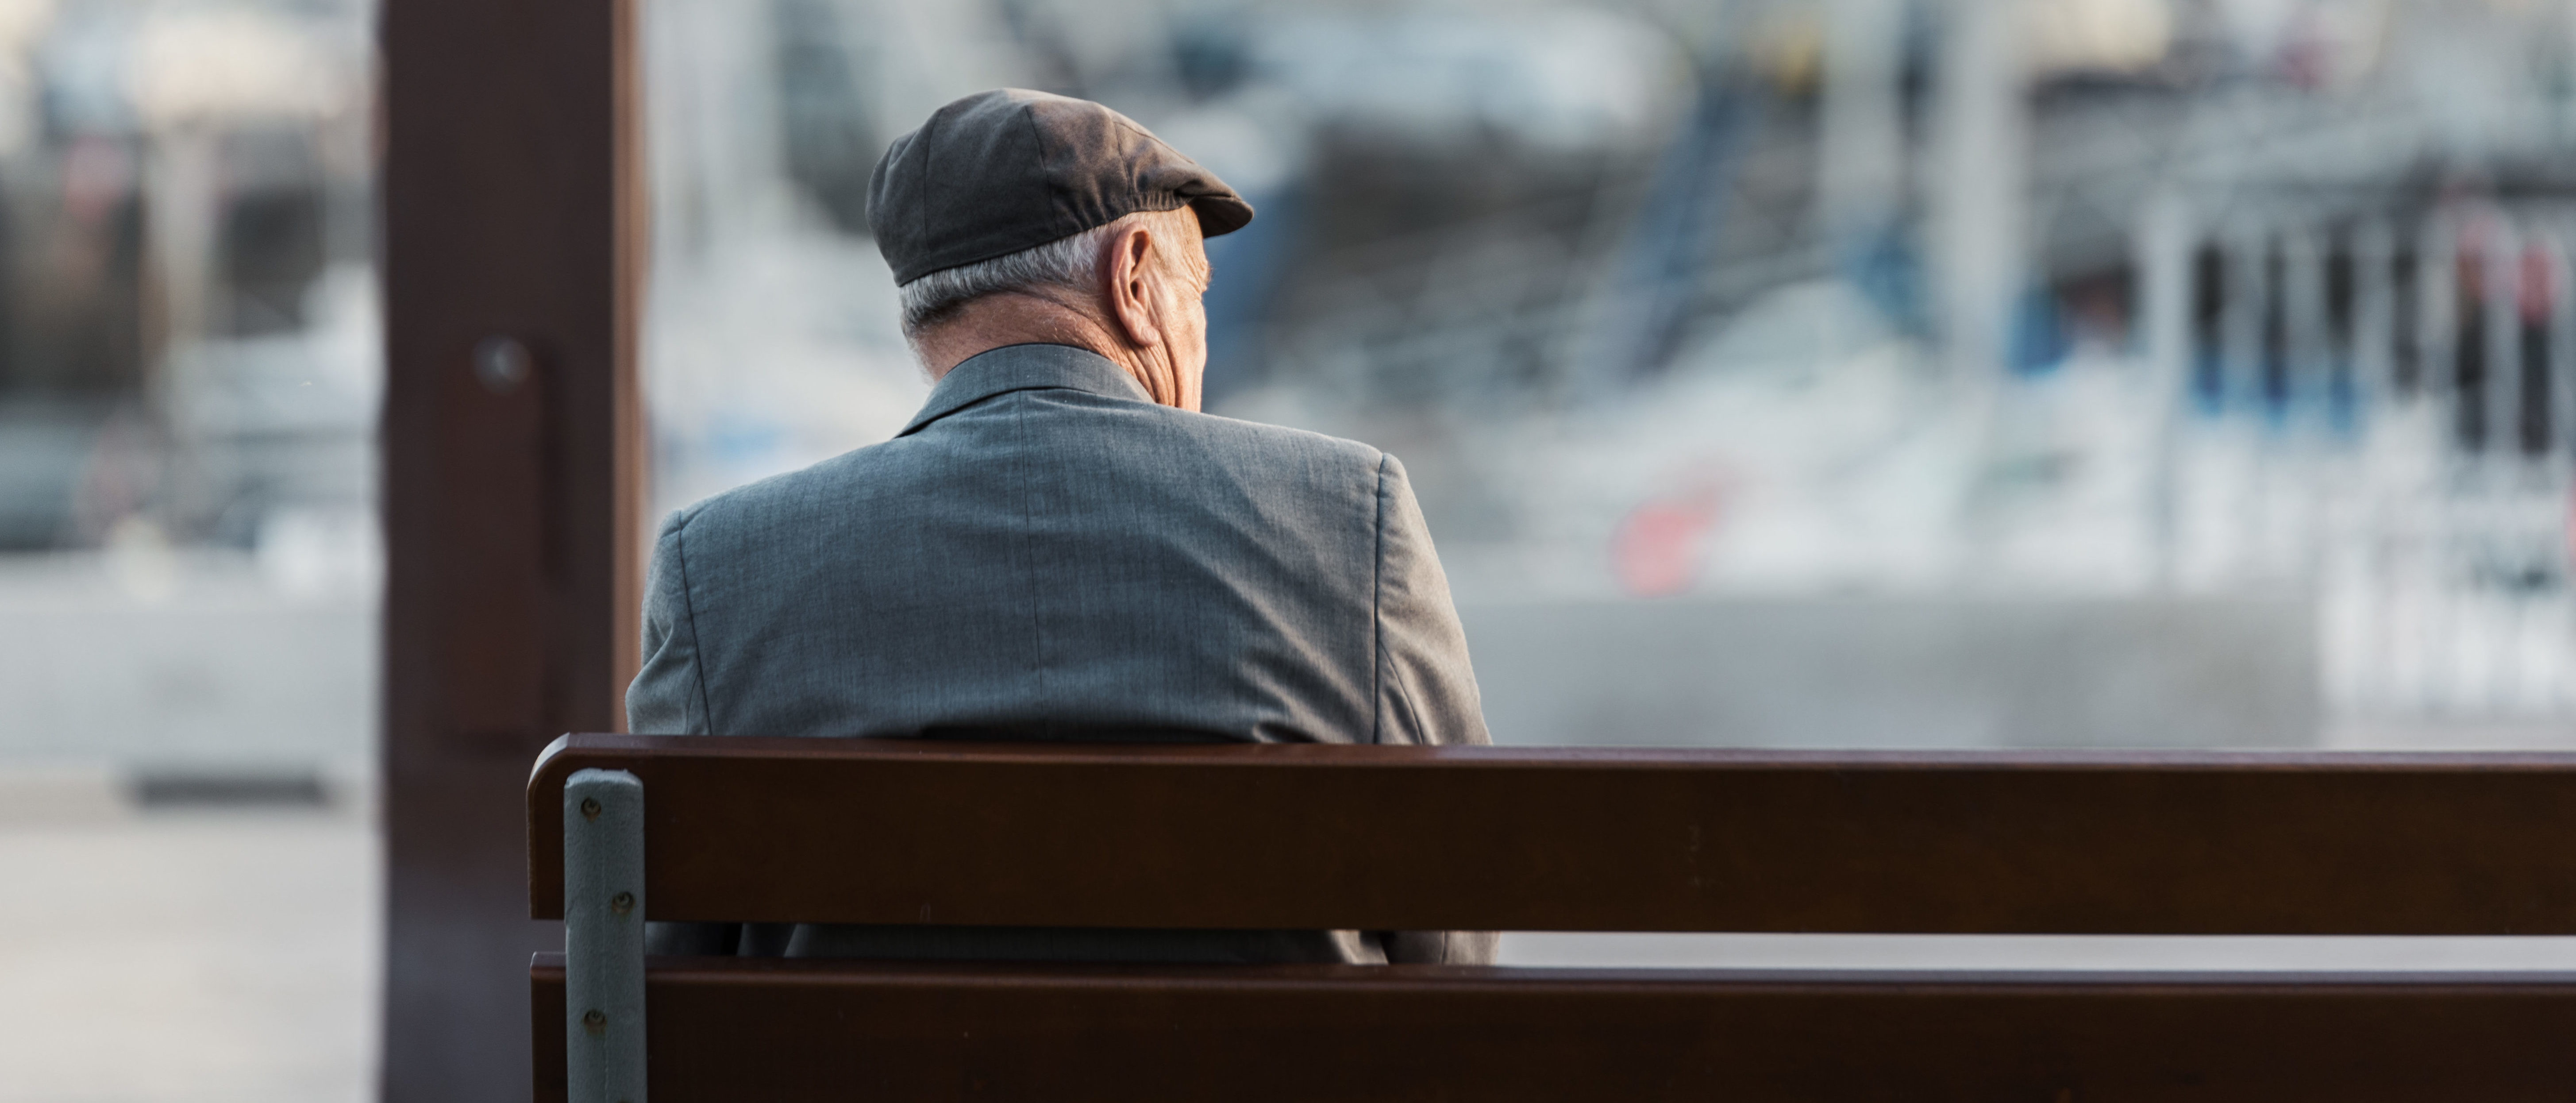 Old man sitting on a bench (By Eduardo Regueiro/Shutterstock)